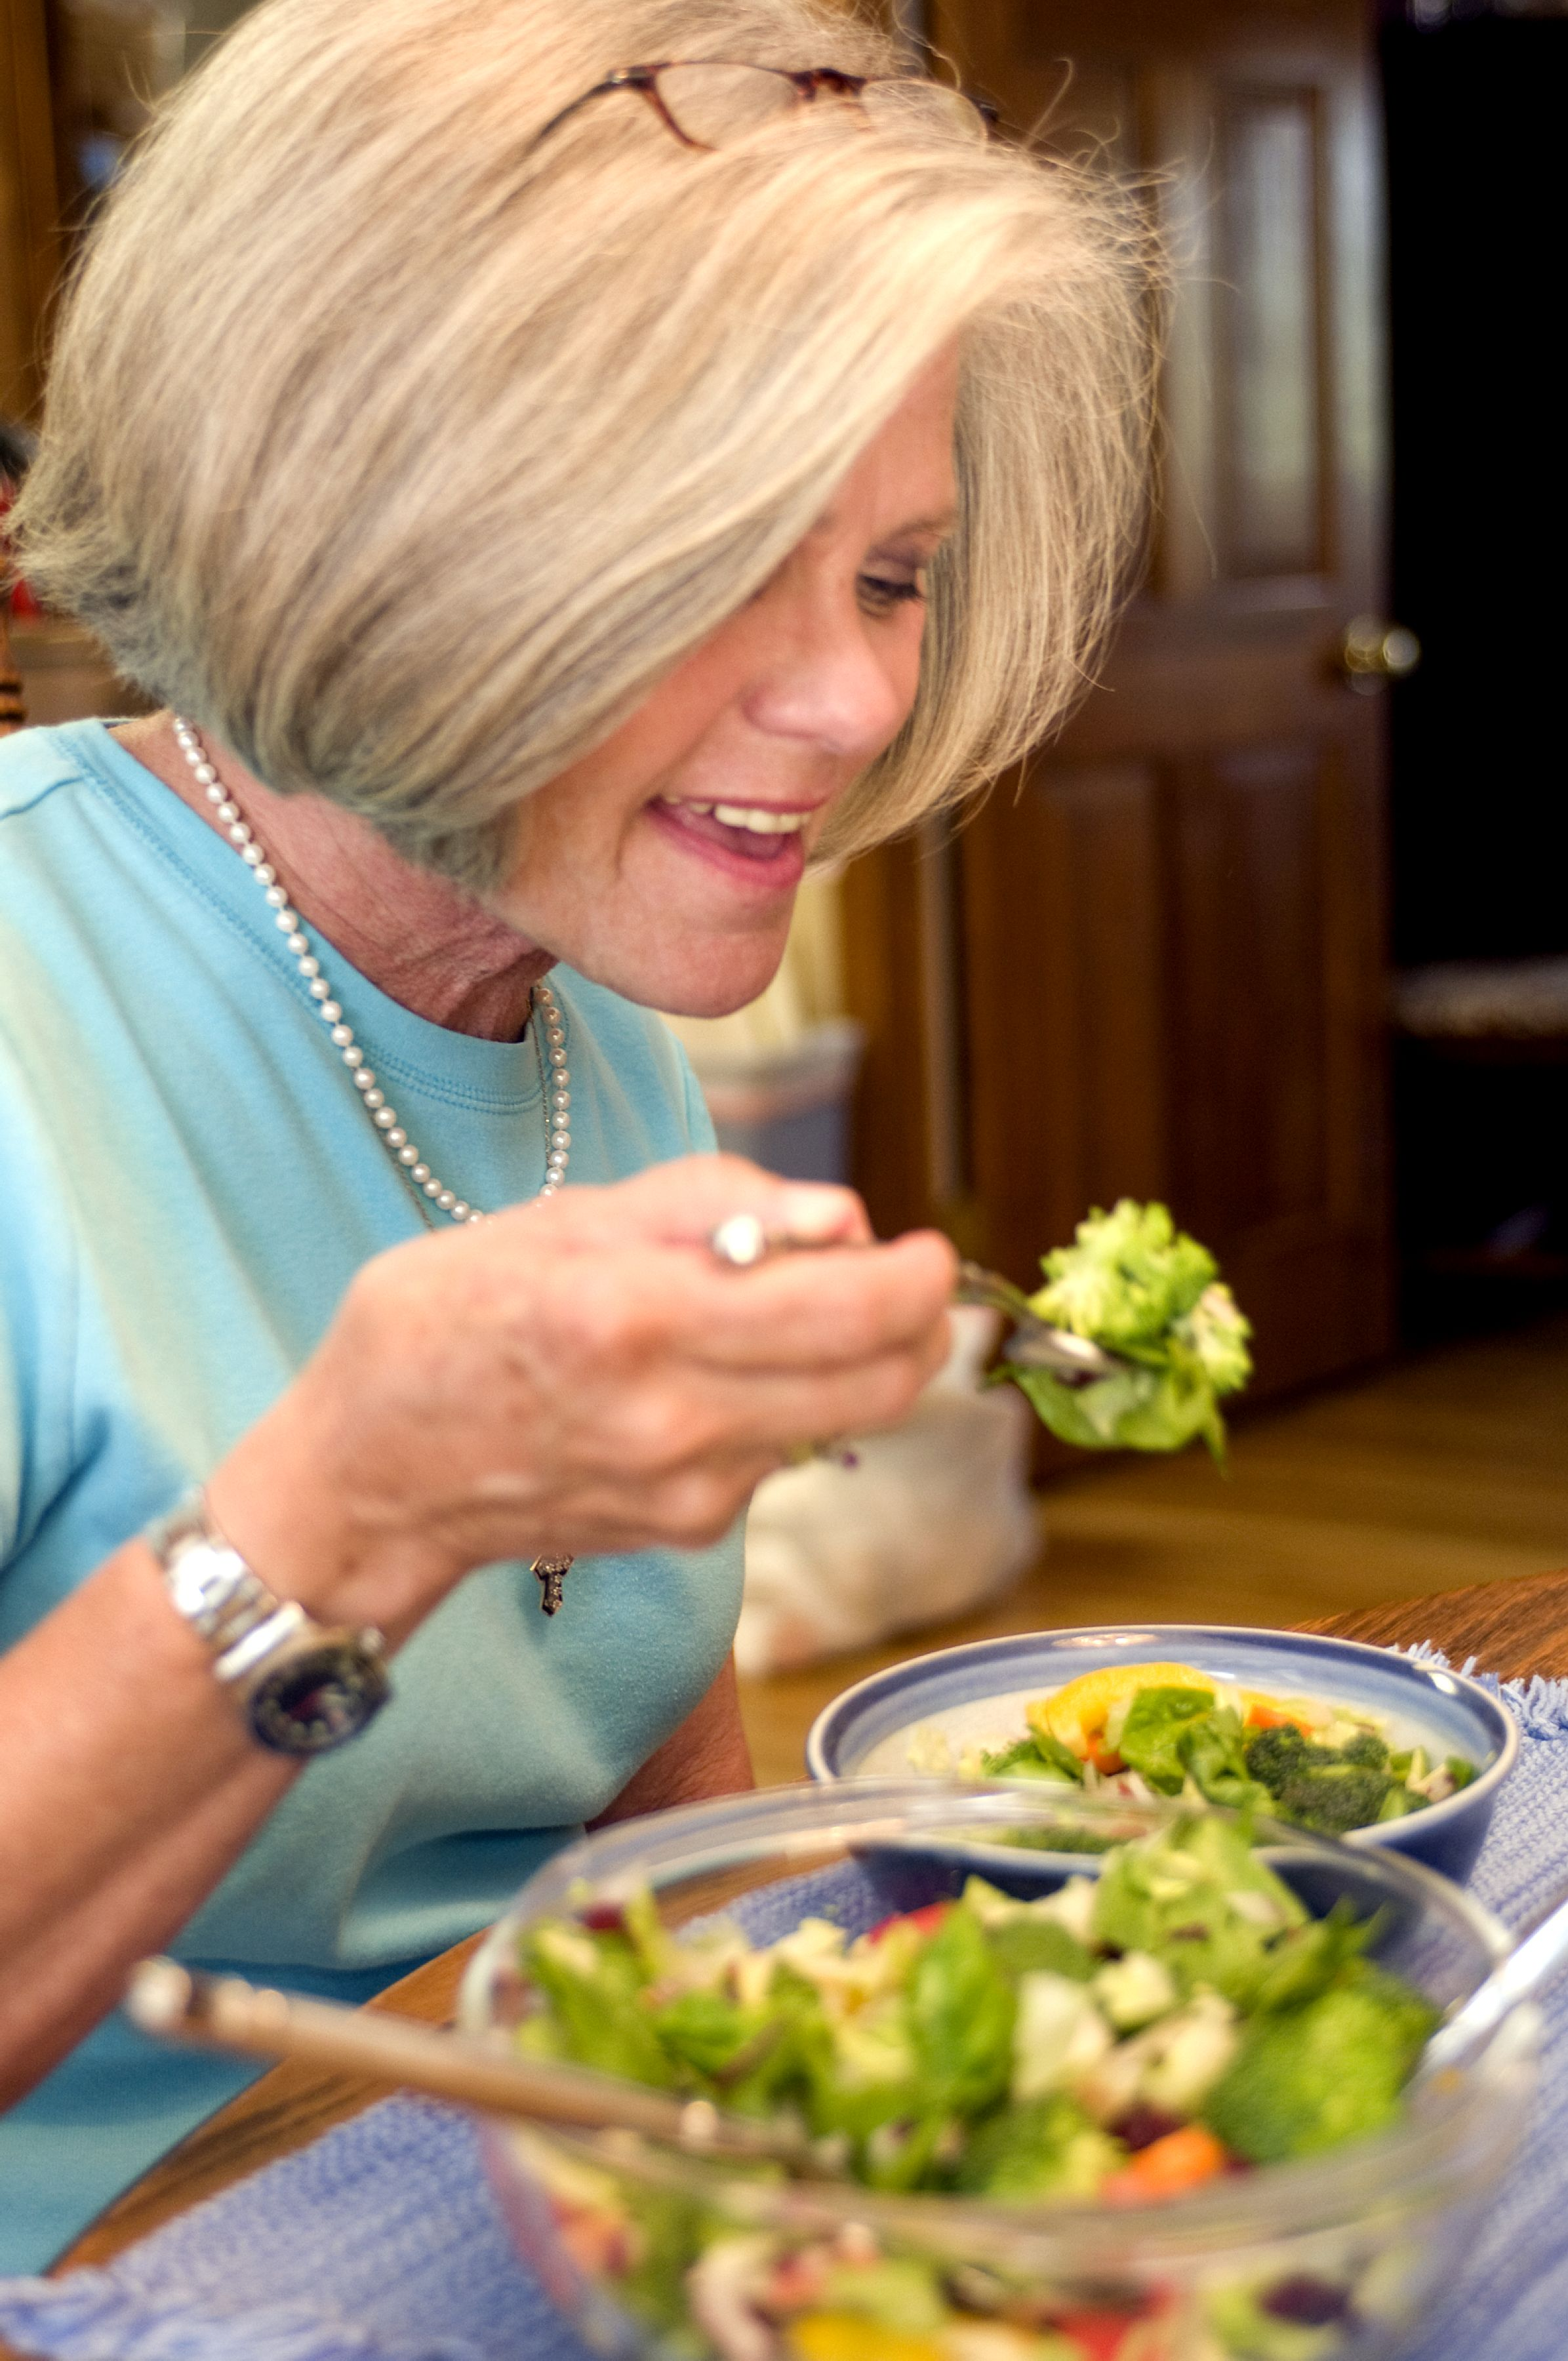 Free Picture Woman Eating Vegetable Salad Packed Full